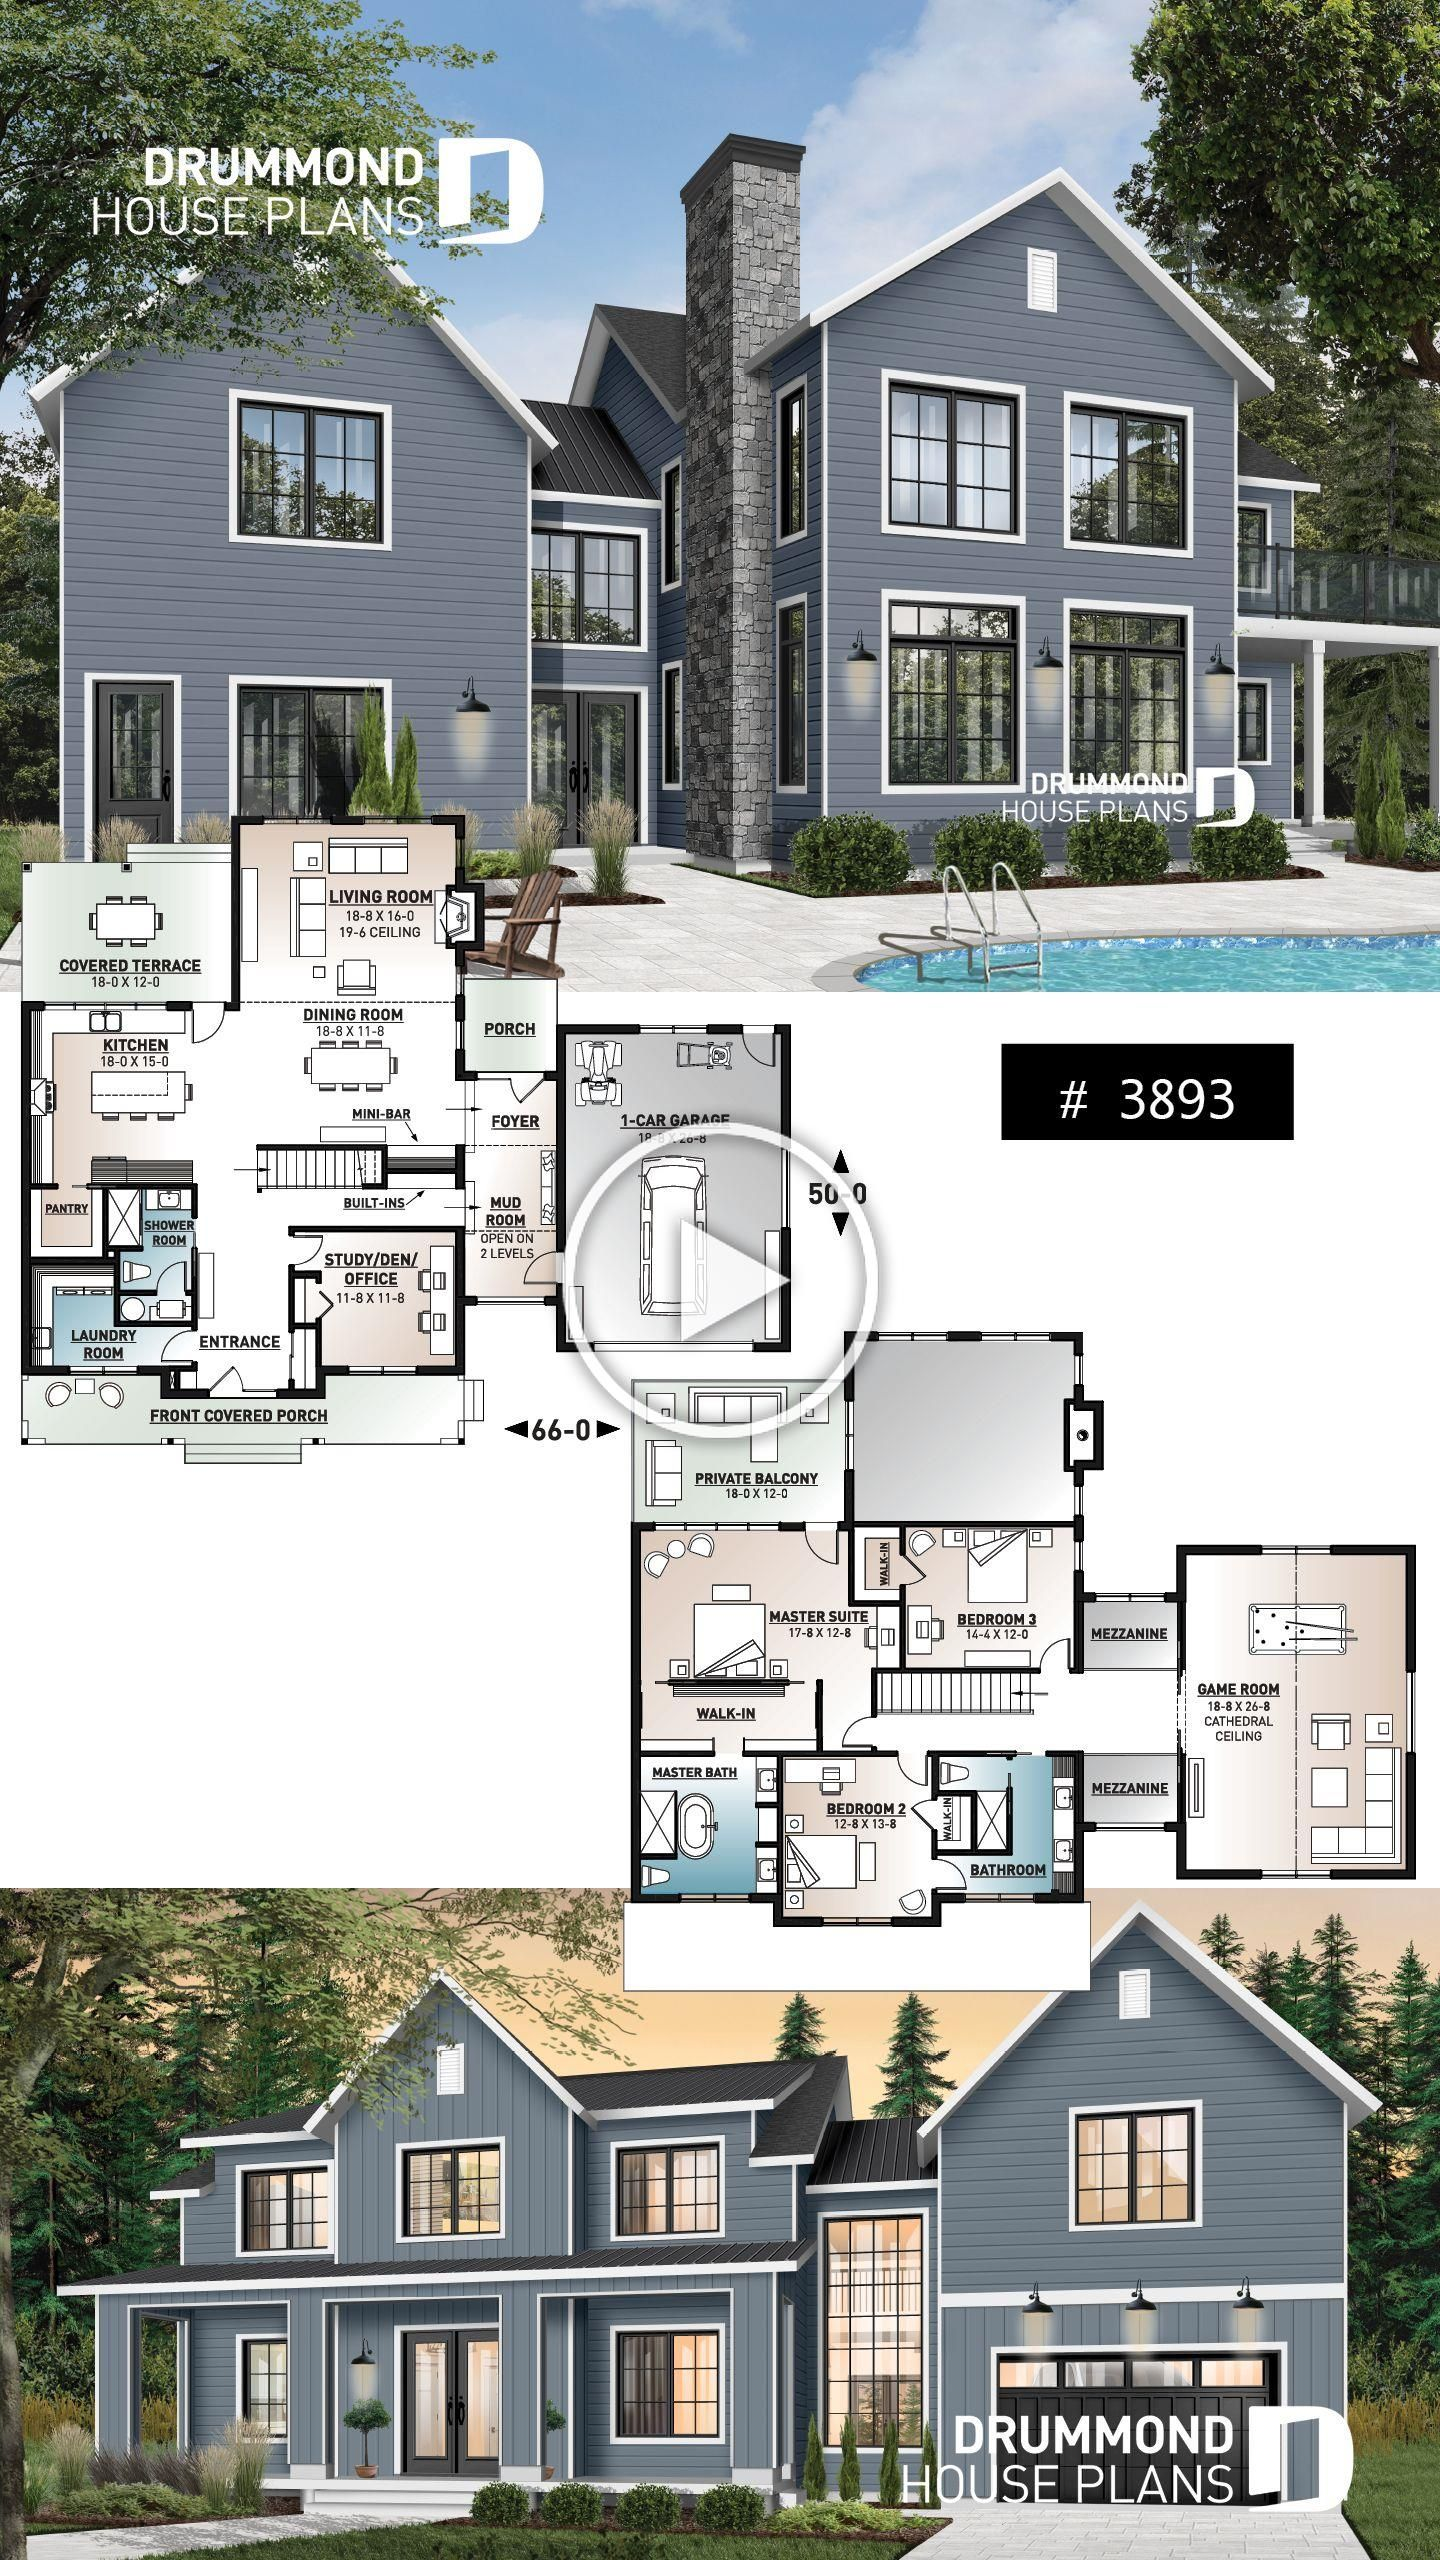 4 Bedroom Modern Farmhouse Plan 3 Baths Garage Spectacular Living Room With Fireplace And 20 Modern Farmhouse Plans Drummond House Plans Modern House Plans